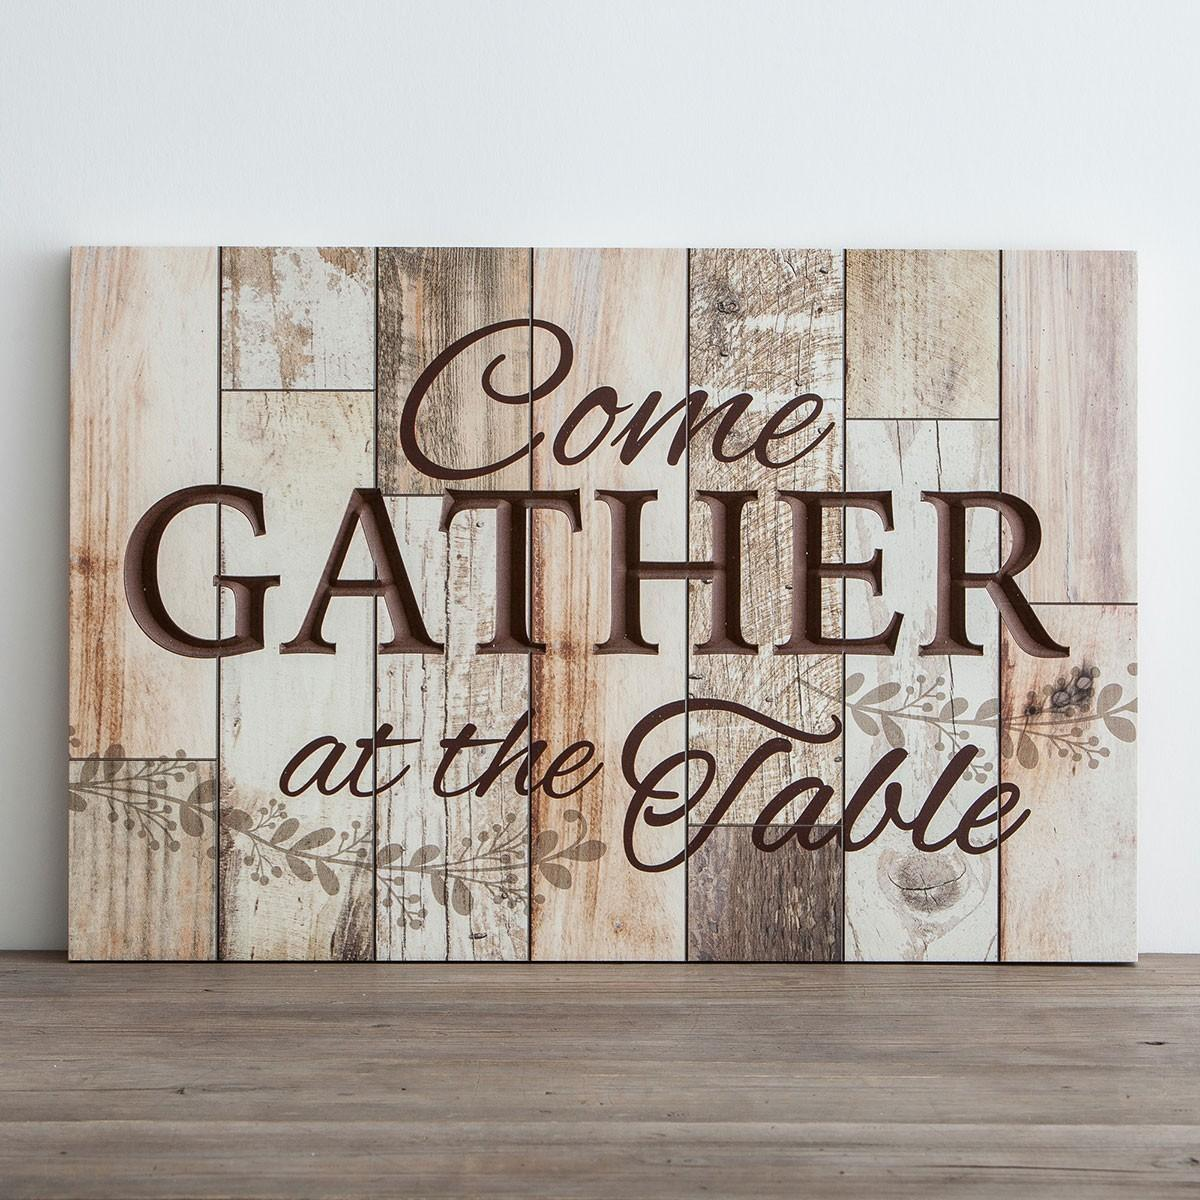 Come Gather Table Wooden Wall Art Dayspring